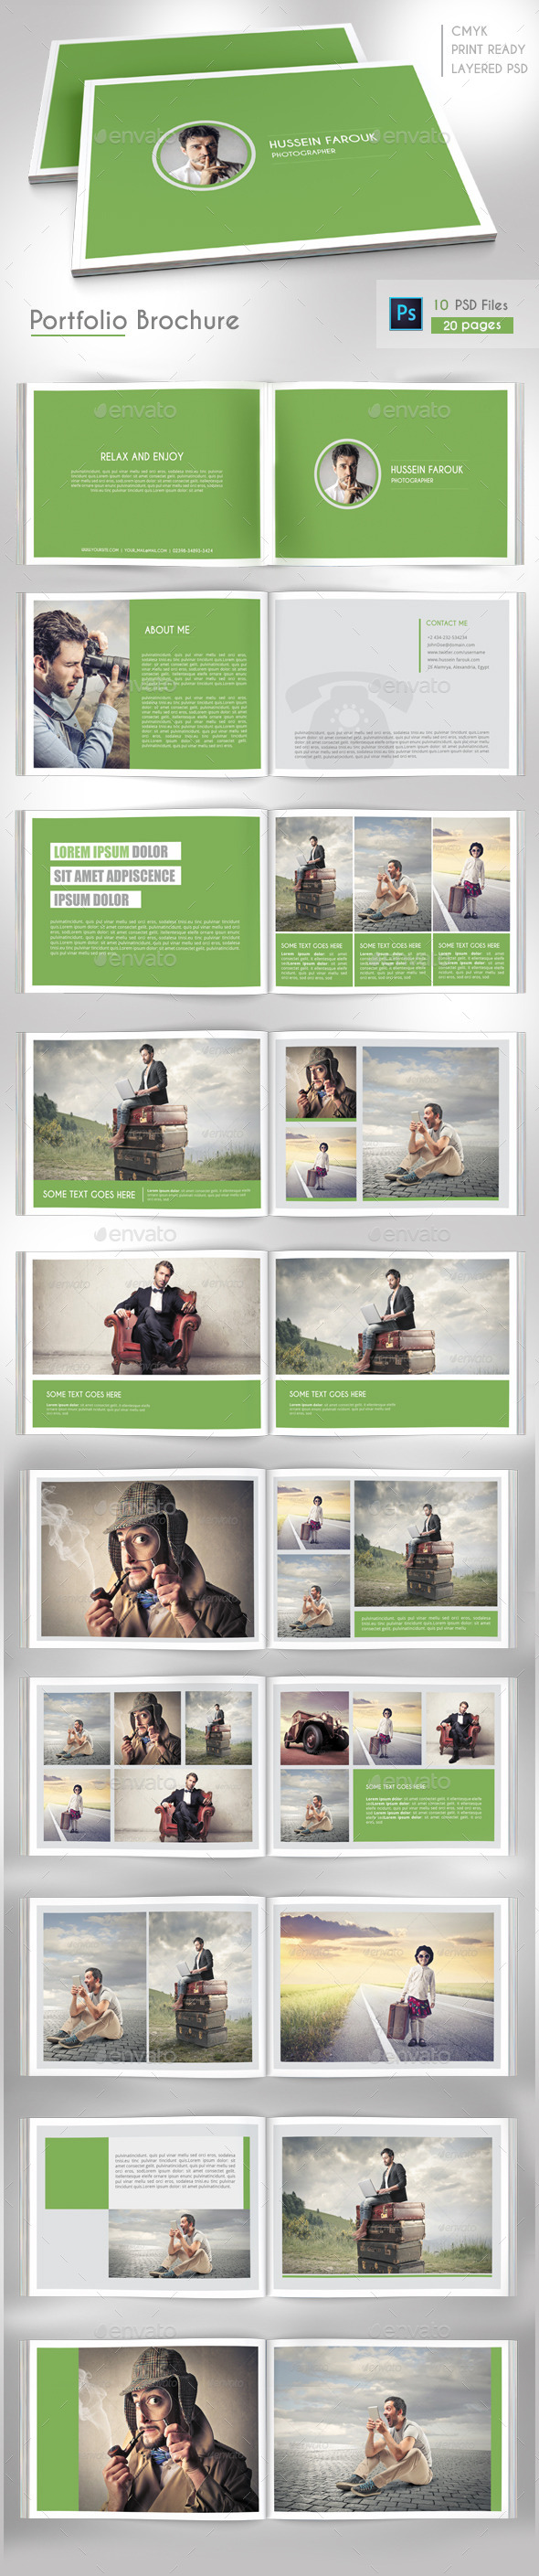 GraphicRiver Portfolio Brochure Vol 1 9166081